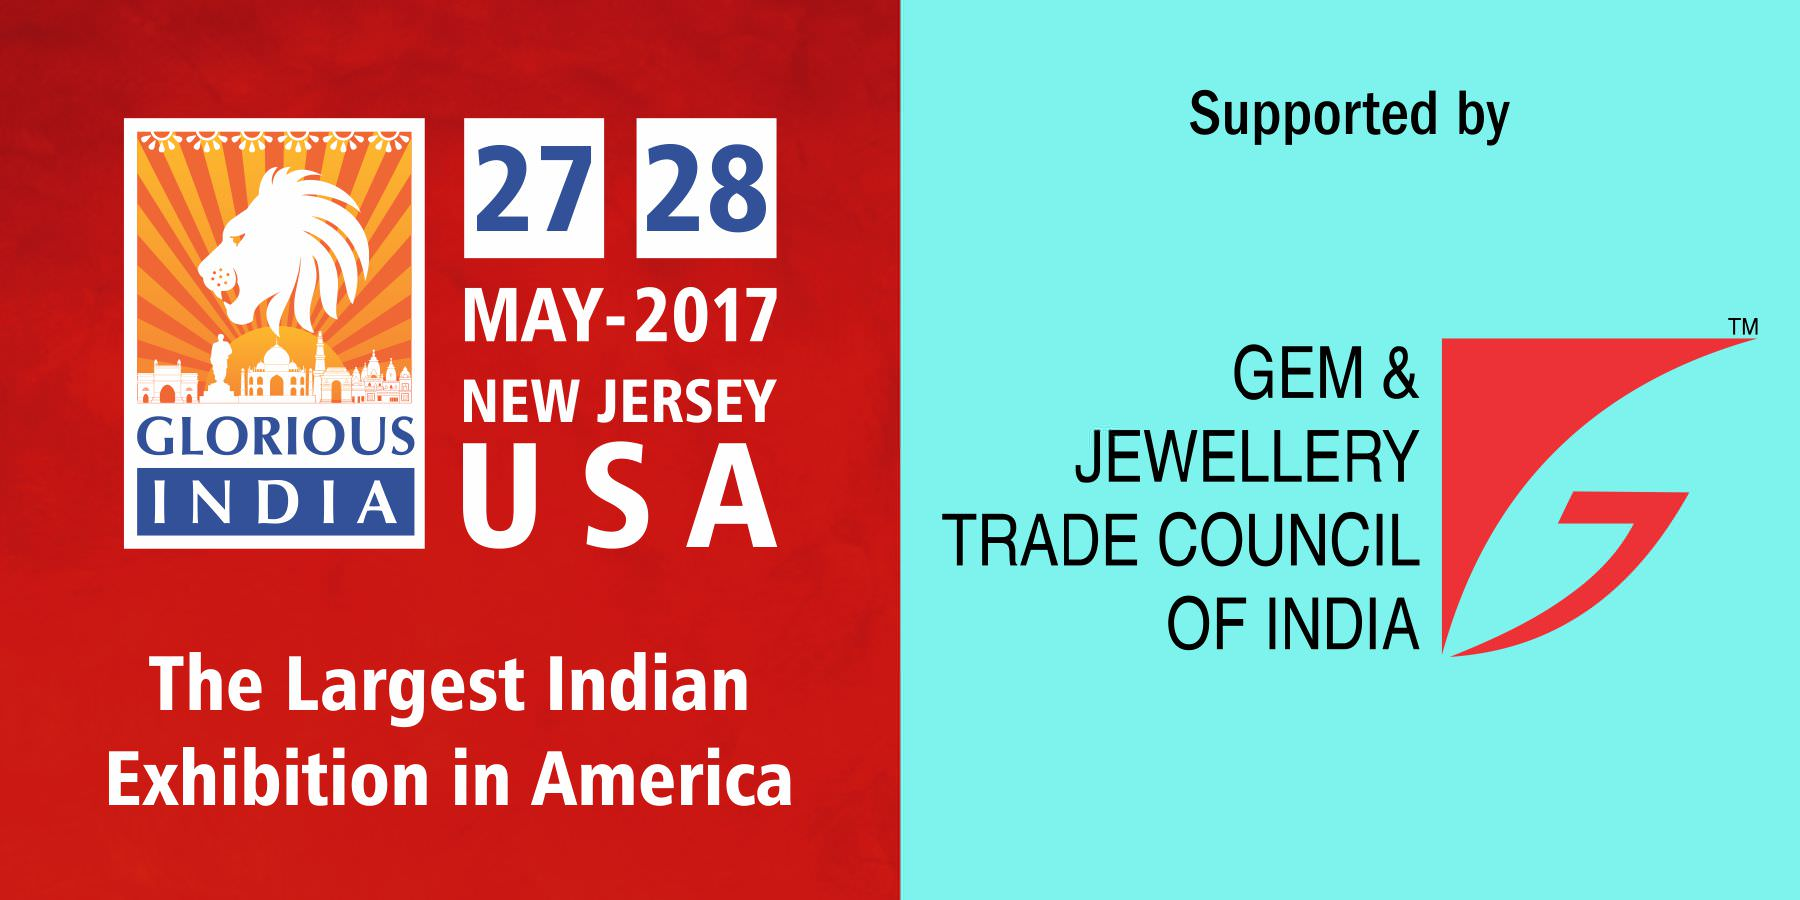 Glorious India Expo - Gem & Jewellery Trade Council of India (GJTCI)